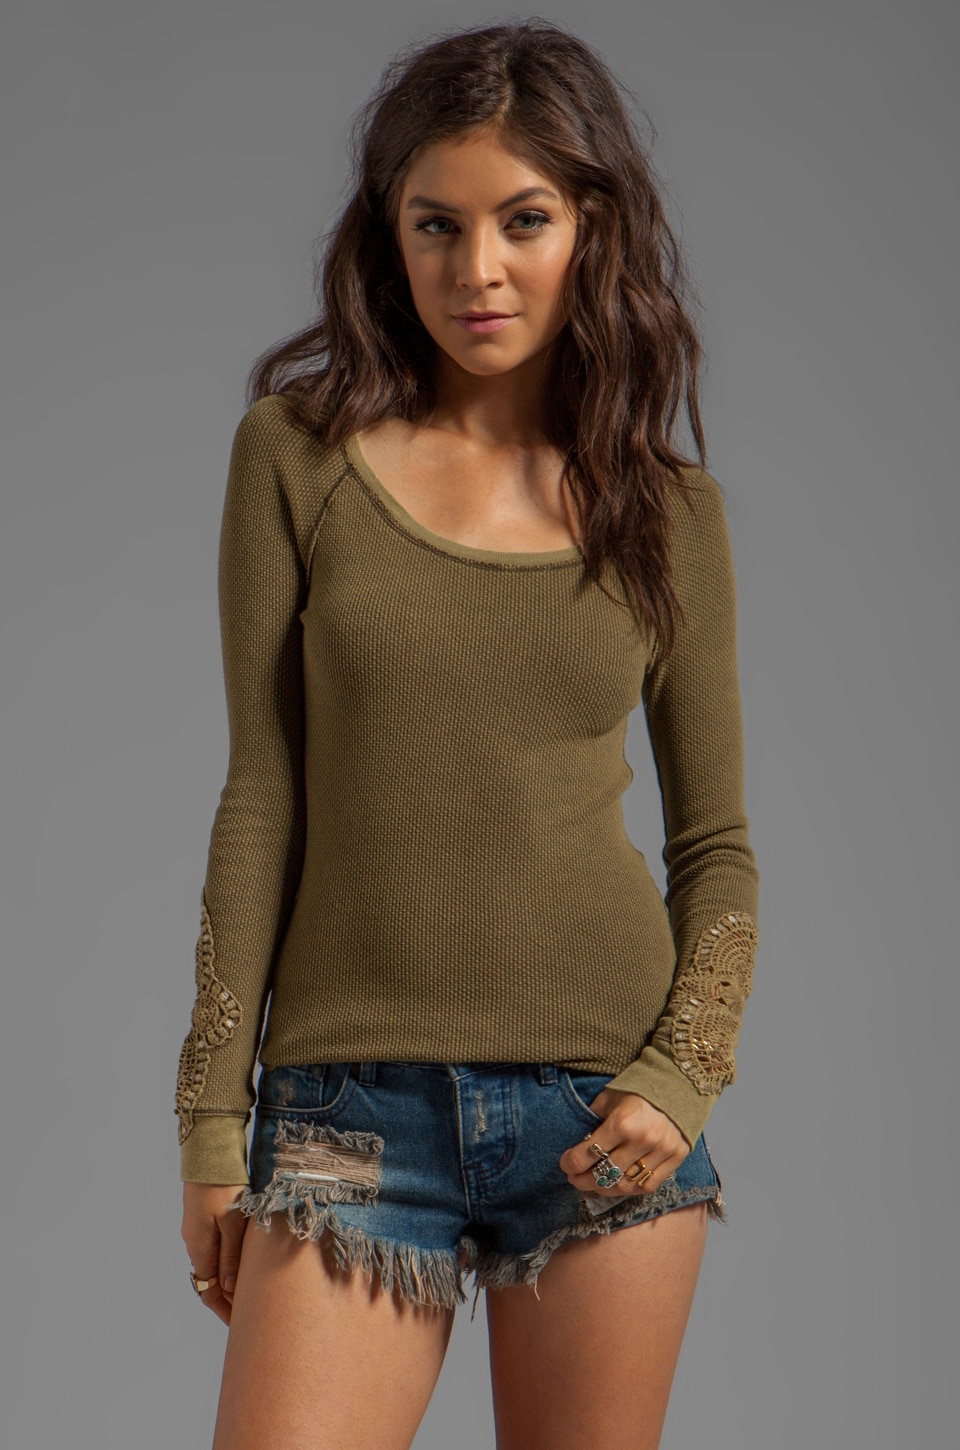 Free People Synergy Cuff Thermal in Army Green